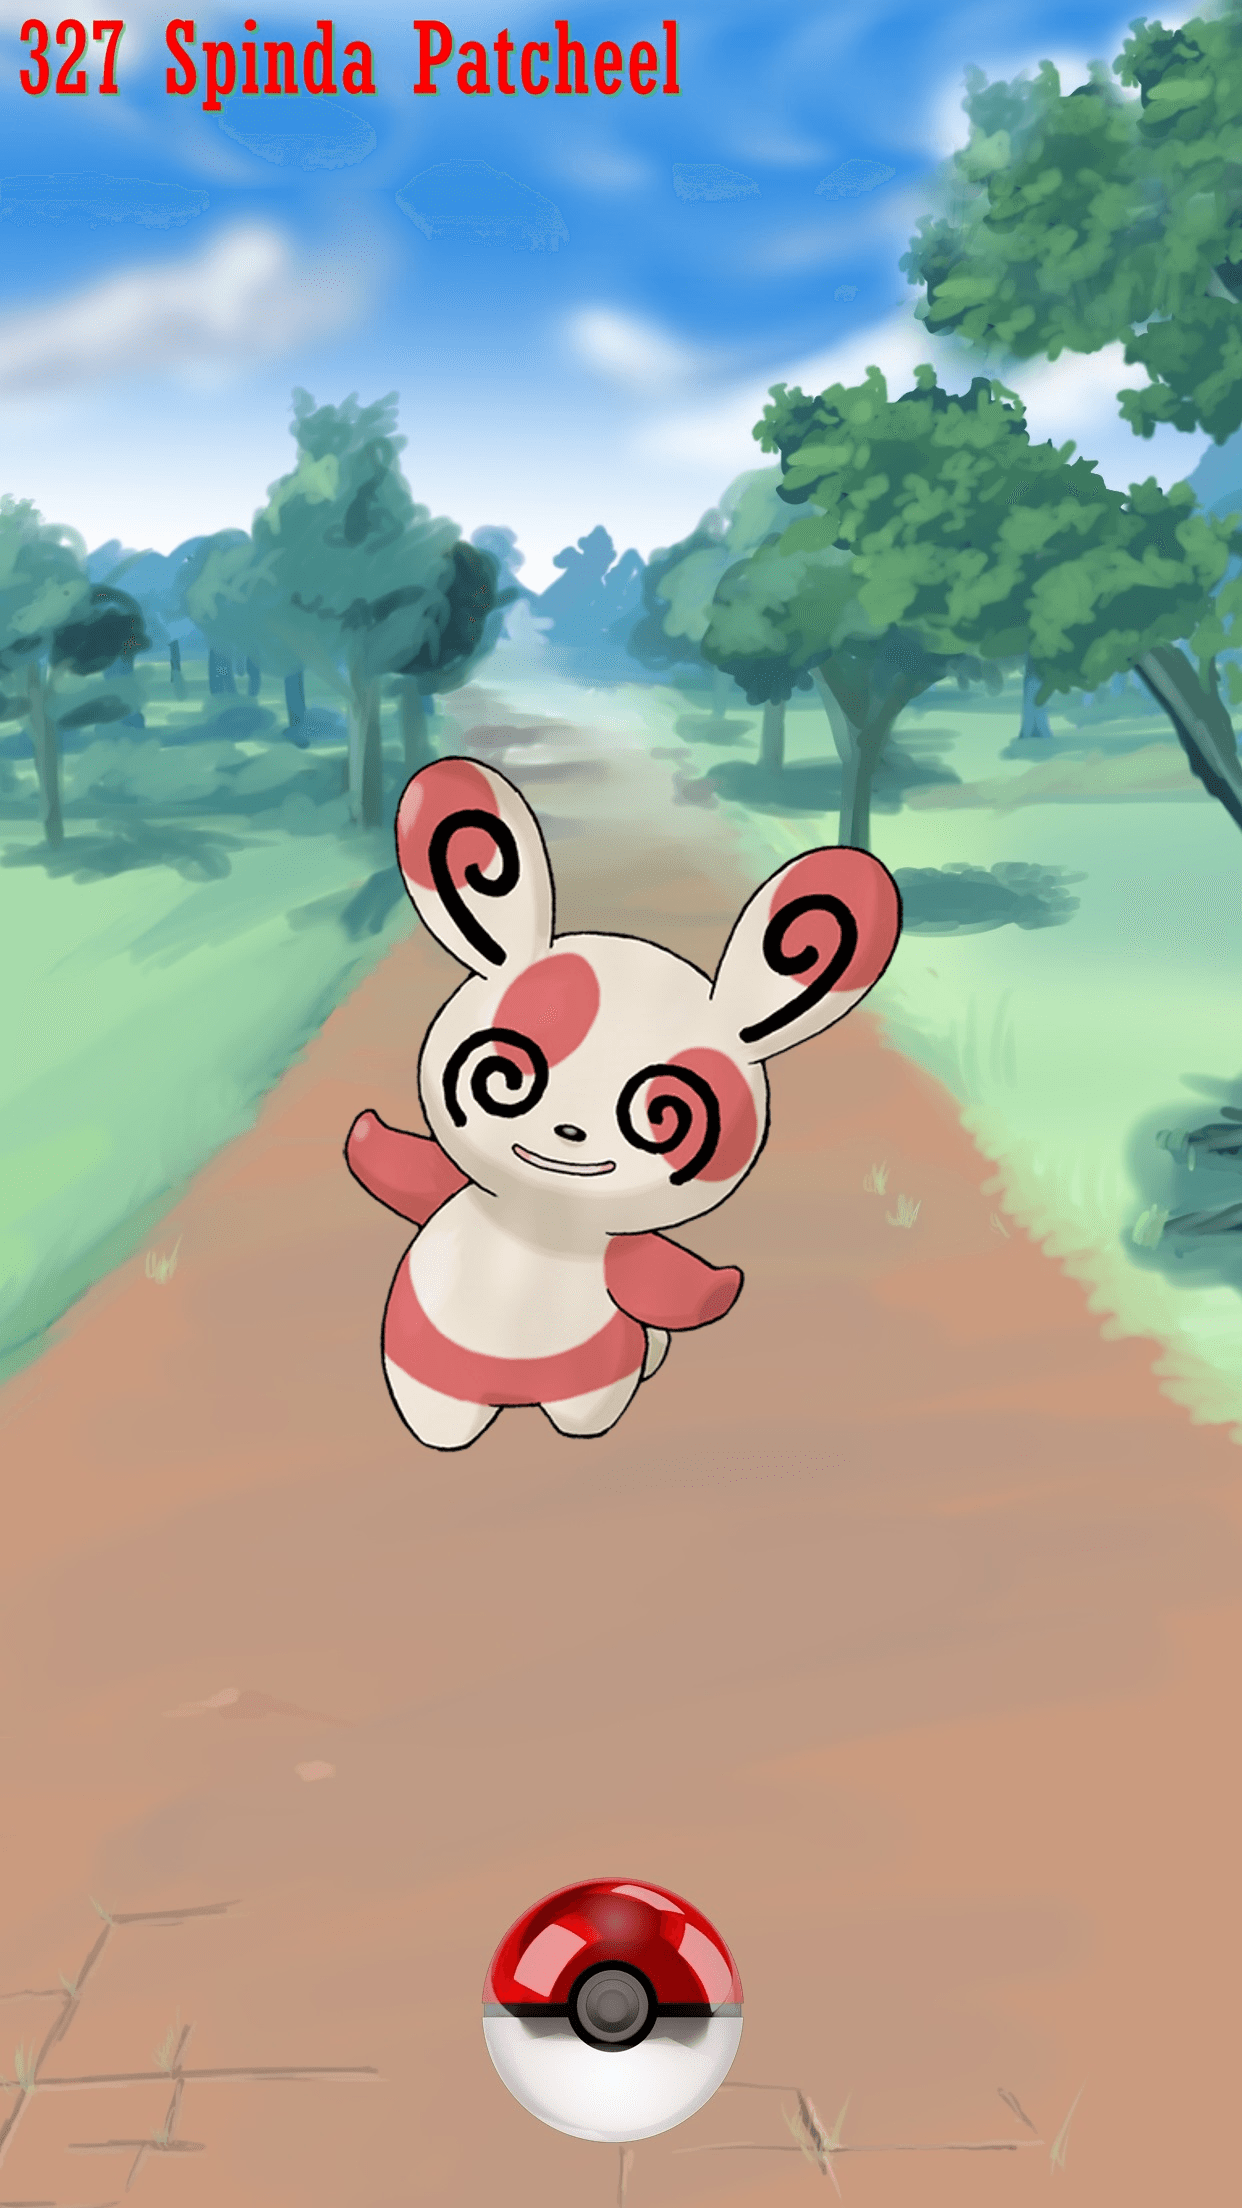 327 Street Pokeball Spinda Patcheel